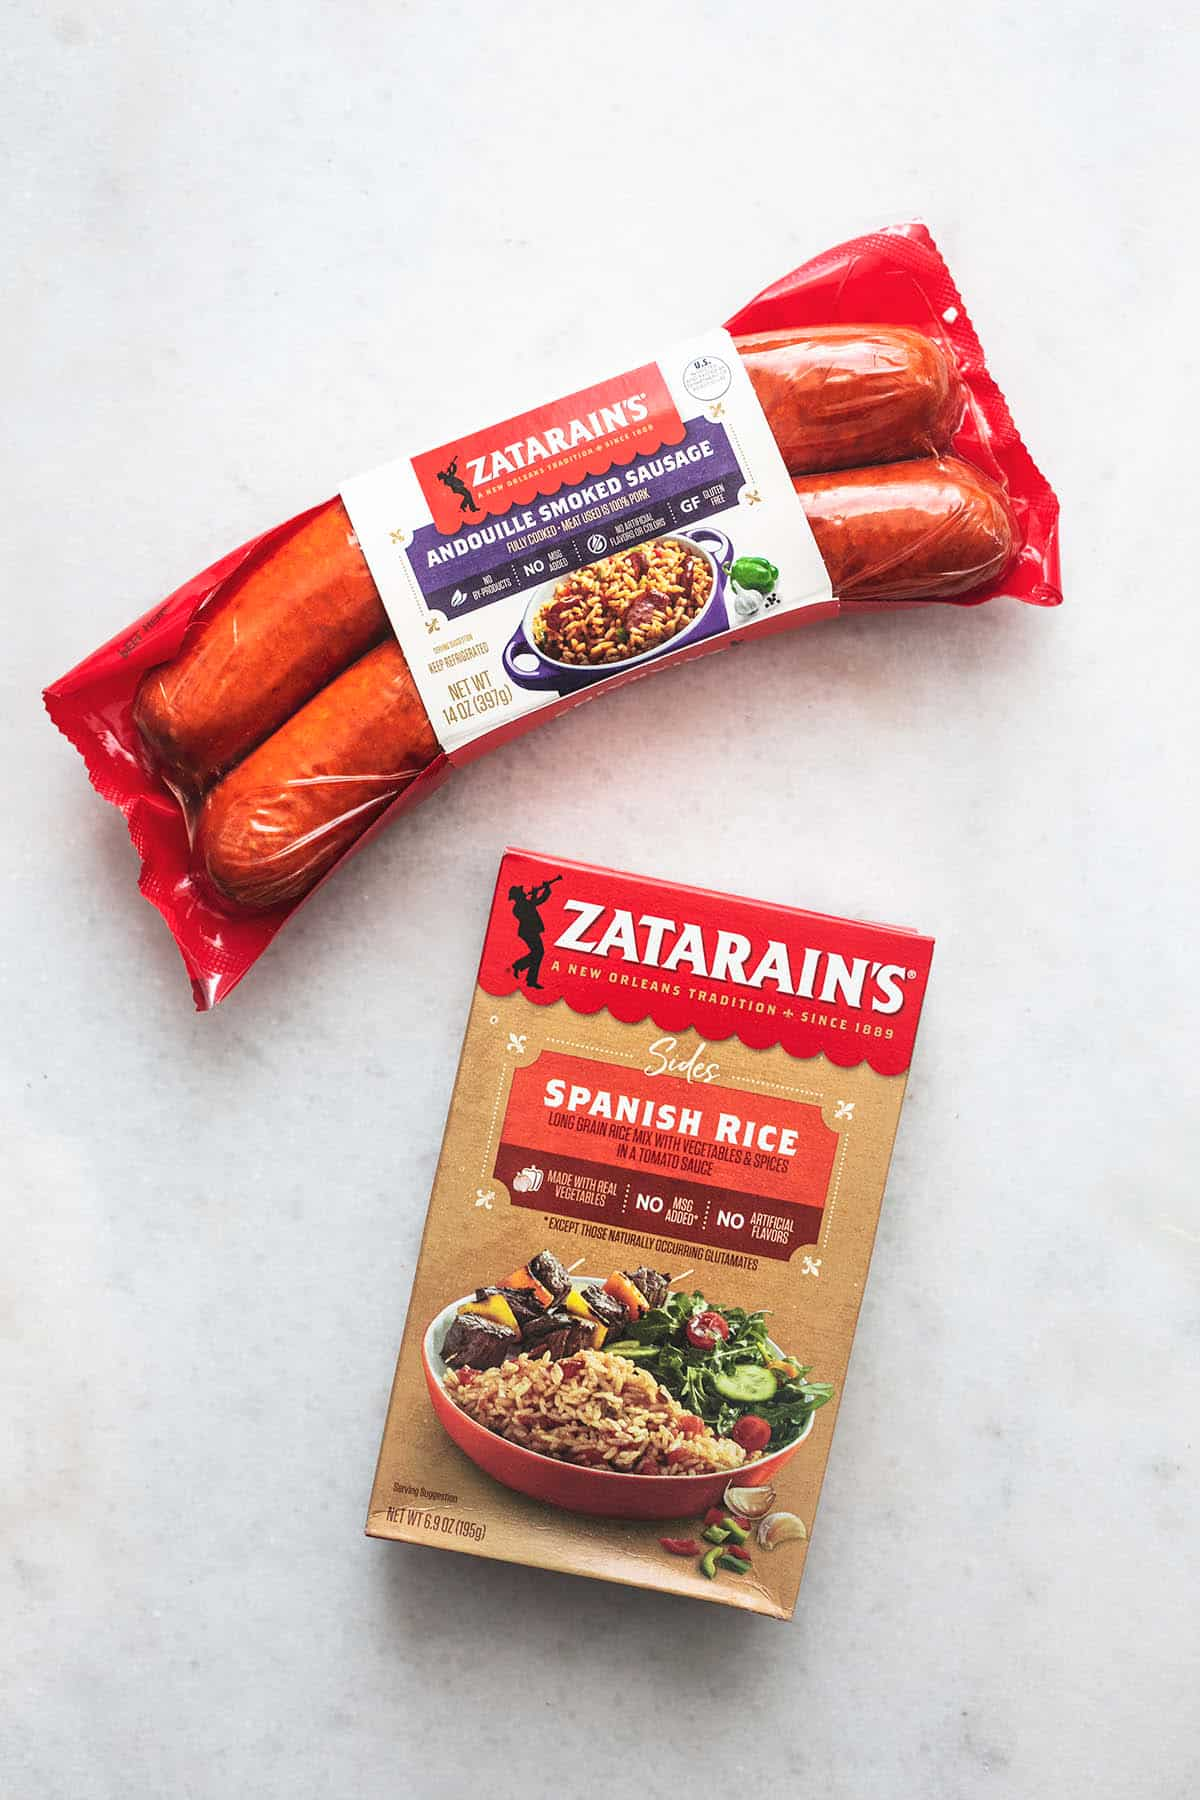 Zatarain's smoked sausage uncooked and Zatarain's spanish rice box